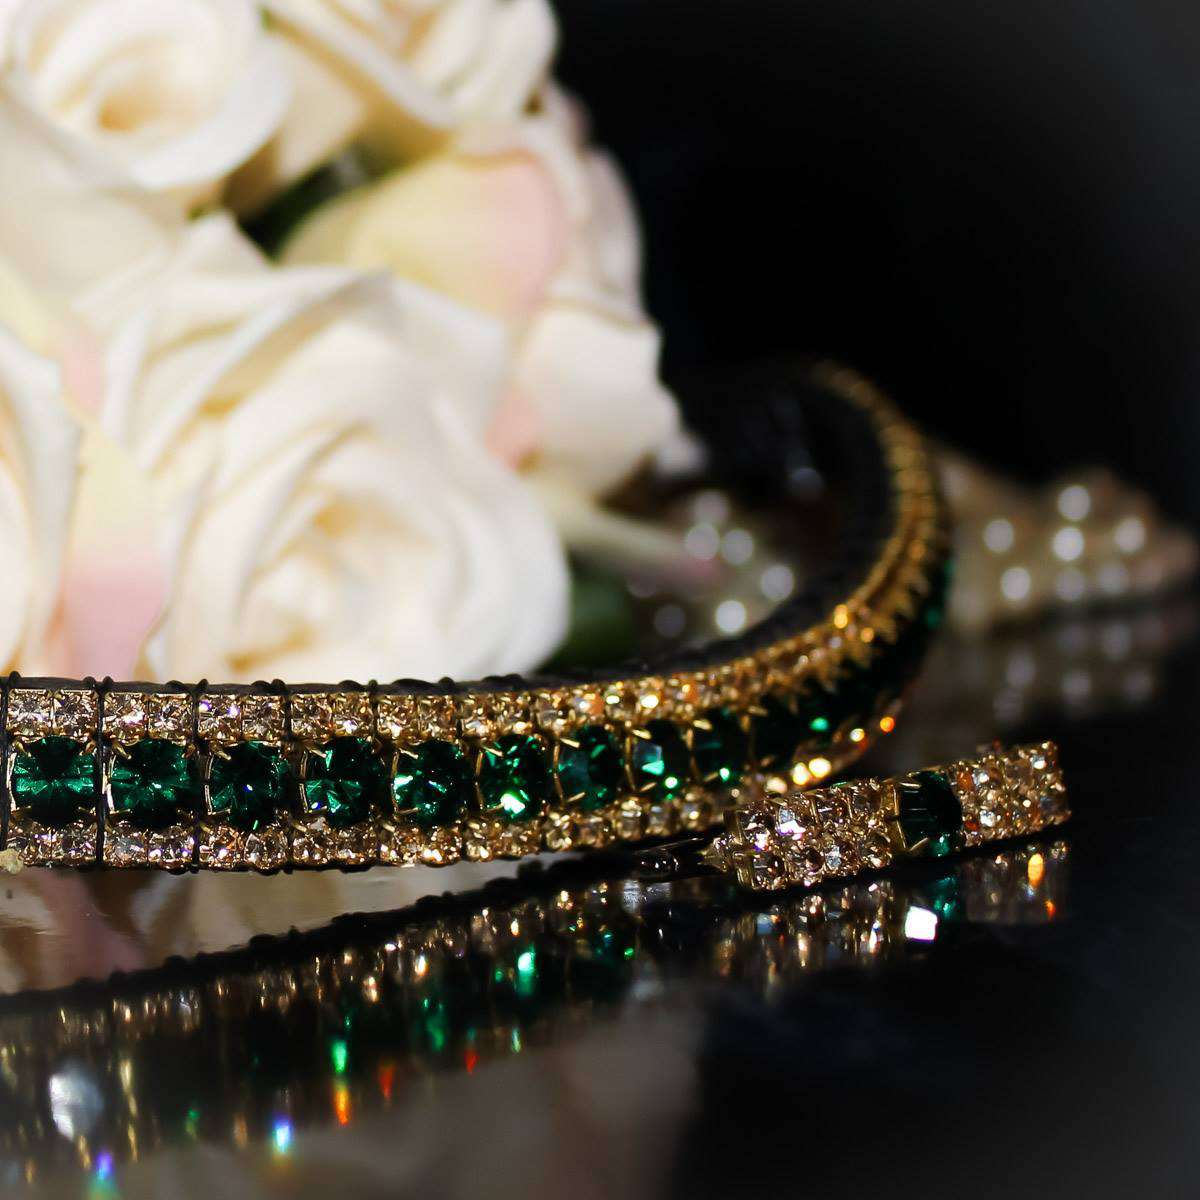 Emerald and golden honey classy antique look browband from PonyCouture's Triple Crown range of handmade crystal browbands with a golden browband and green browband and on a black back ground with matching stock pin